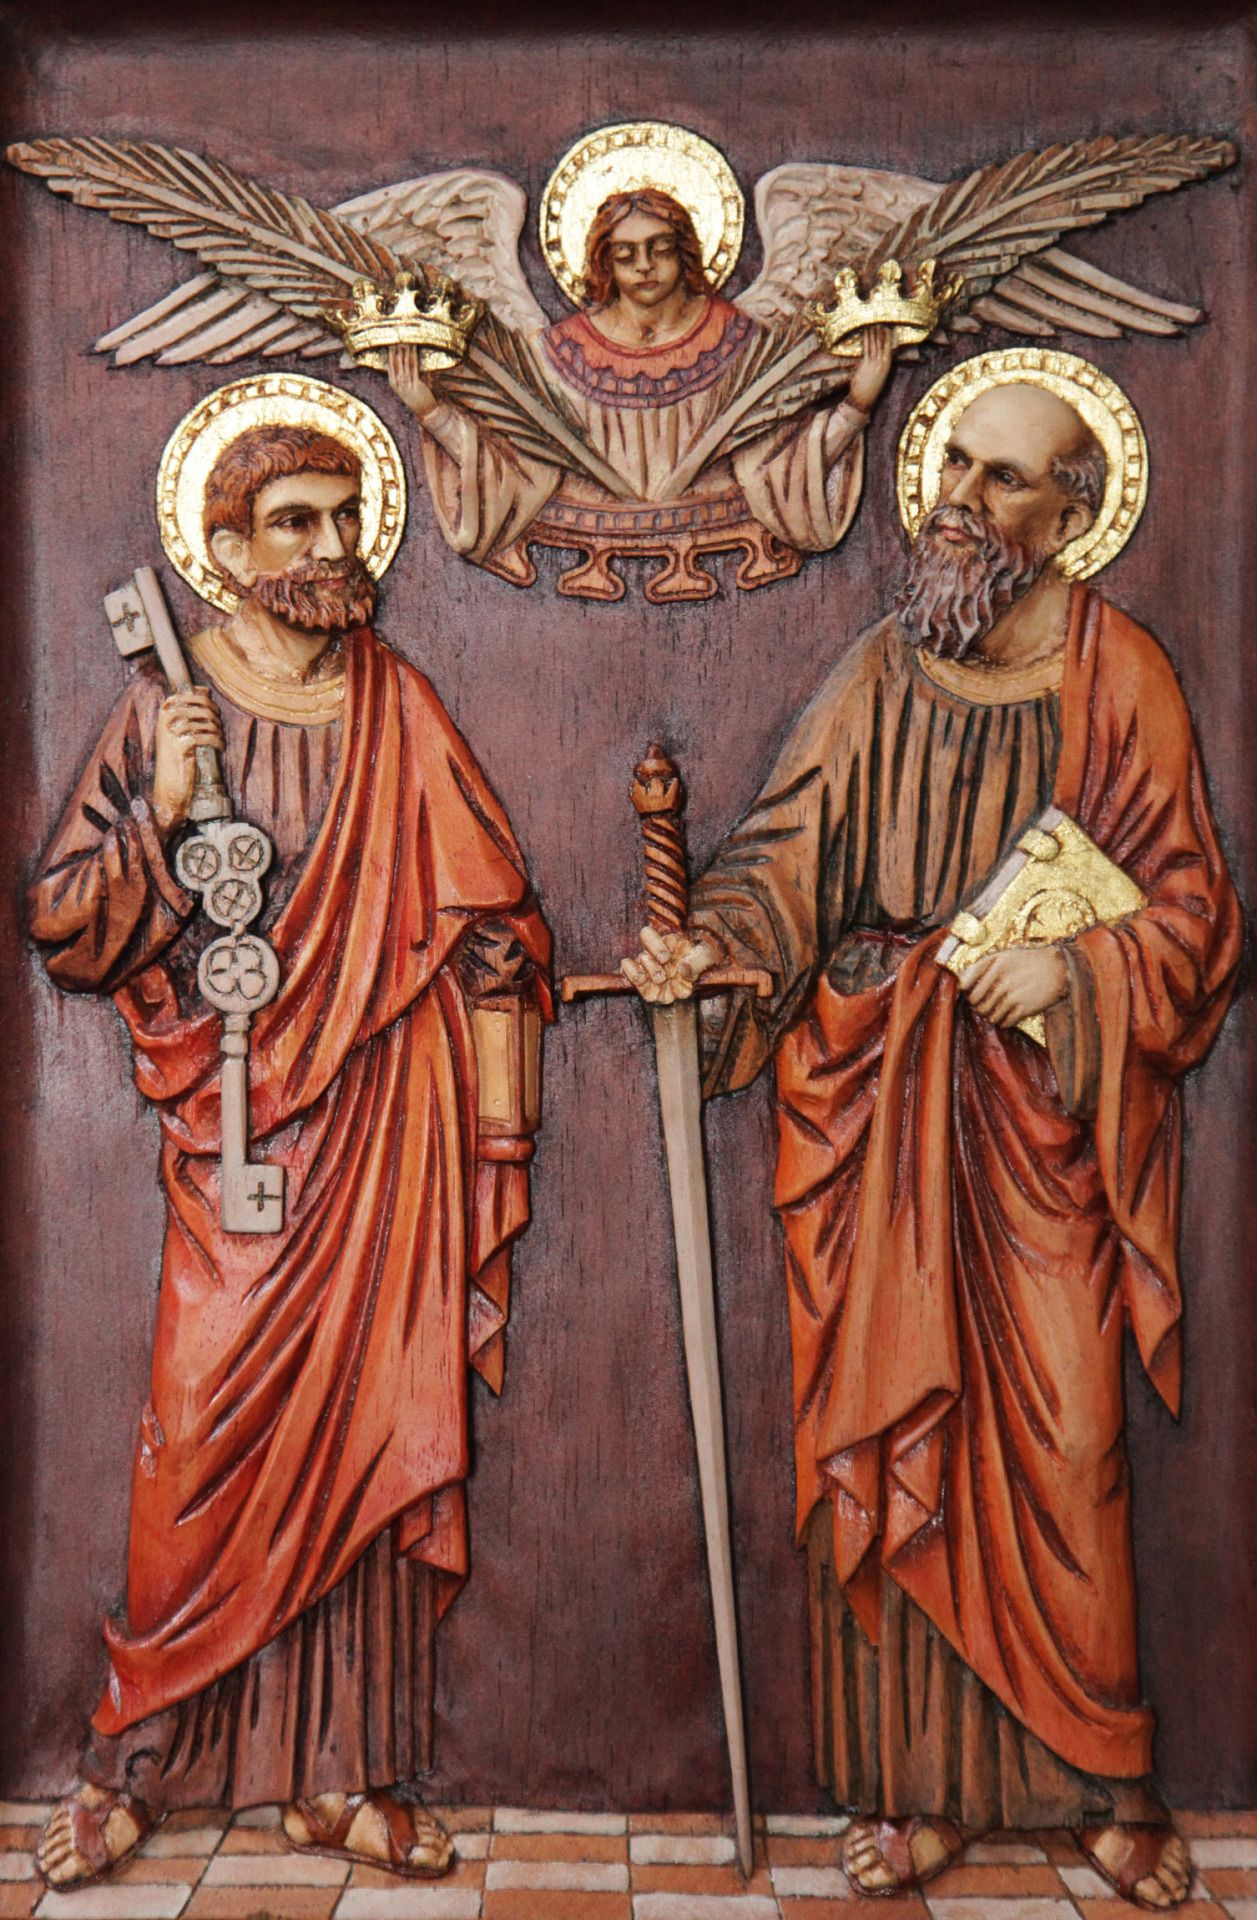 June 29 is the Solemnity of Saints Peter and Paul